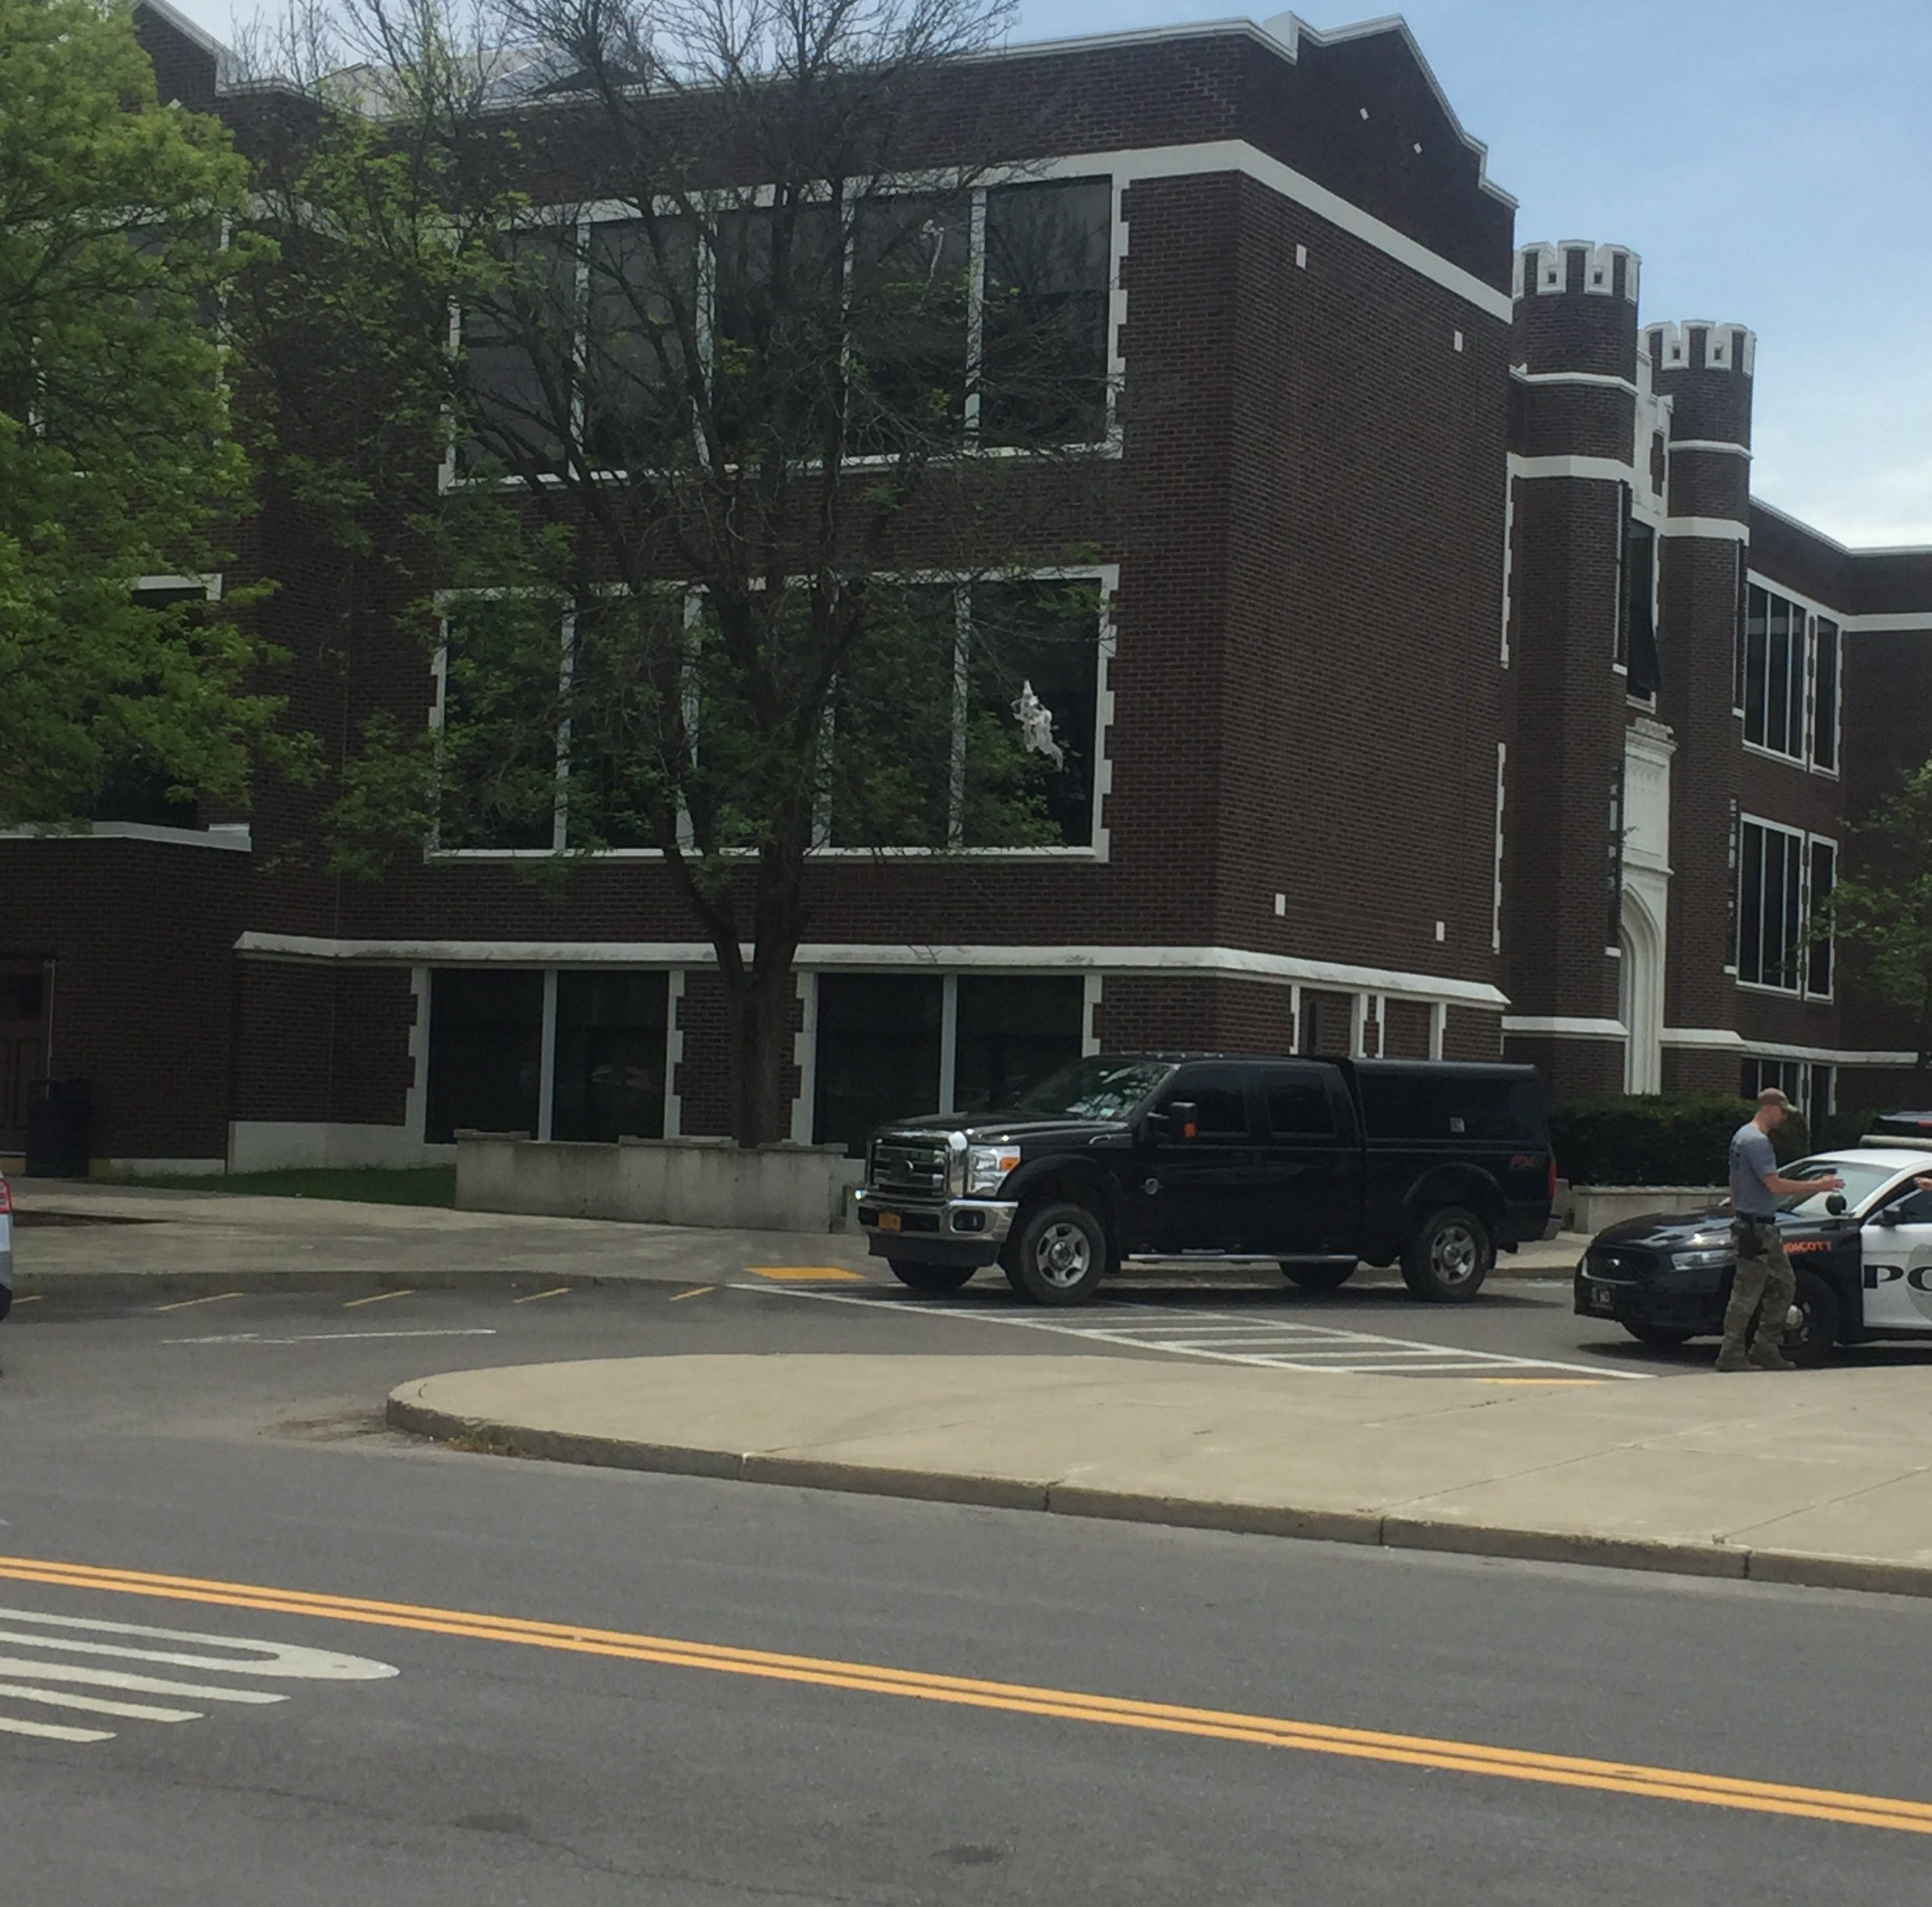 Union-Endicott high school lockdown: Binghamton teen charged with making threat